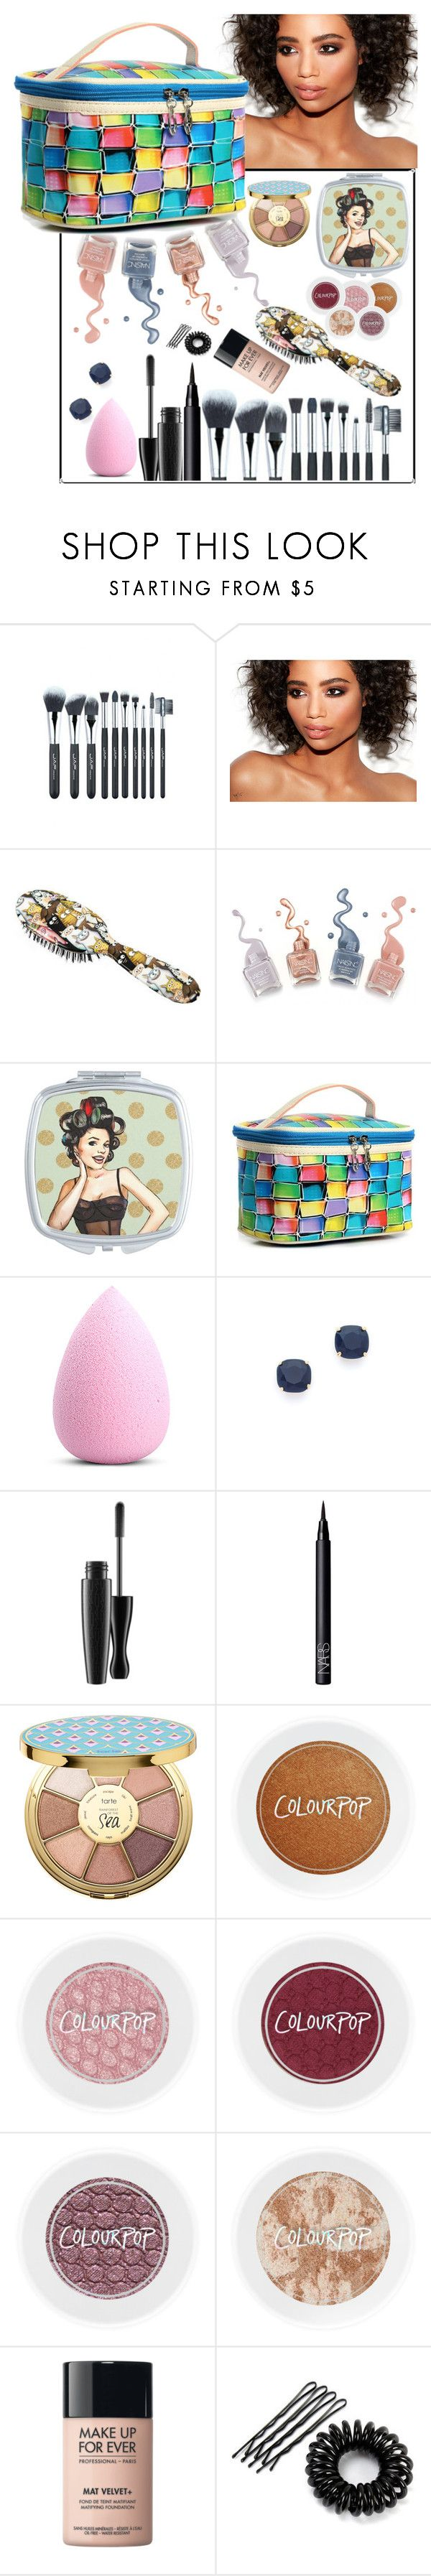 """""""Untitled #583"""" by cordelia-fortuna ❤ liked on Polyvore featuring beauty, Rock & Ruddle, My Makeup Brush Set, Kate Spade, NARS Cosmetics, tarte and MAKE UP FOR EVER"""